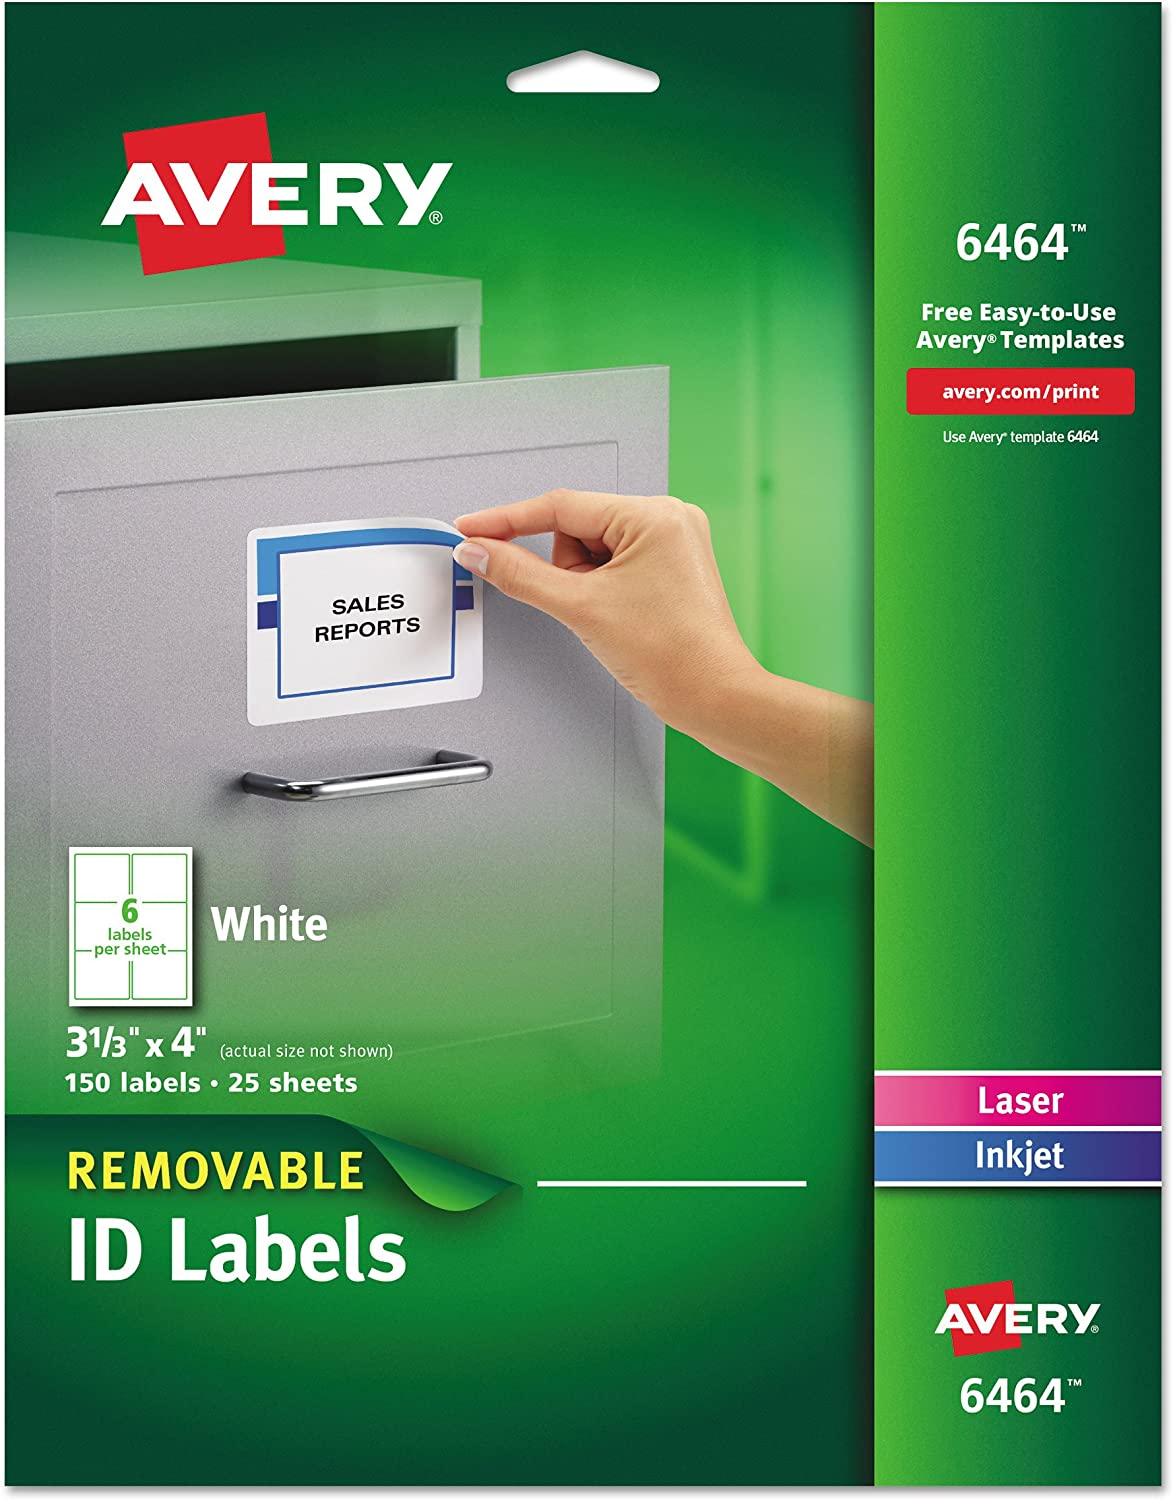 Avery Removable 3-1/3 x 4 Inch White ID Labels 150 Pack (6464) : Removable Labels : Office Products